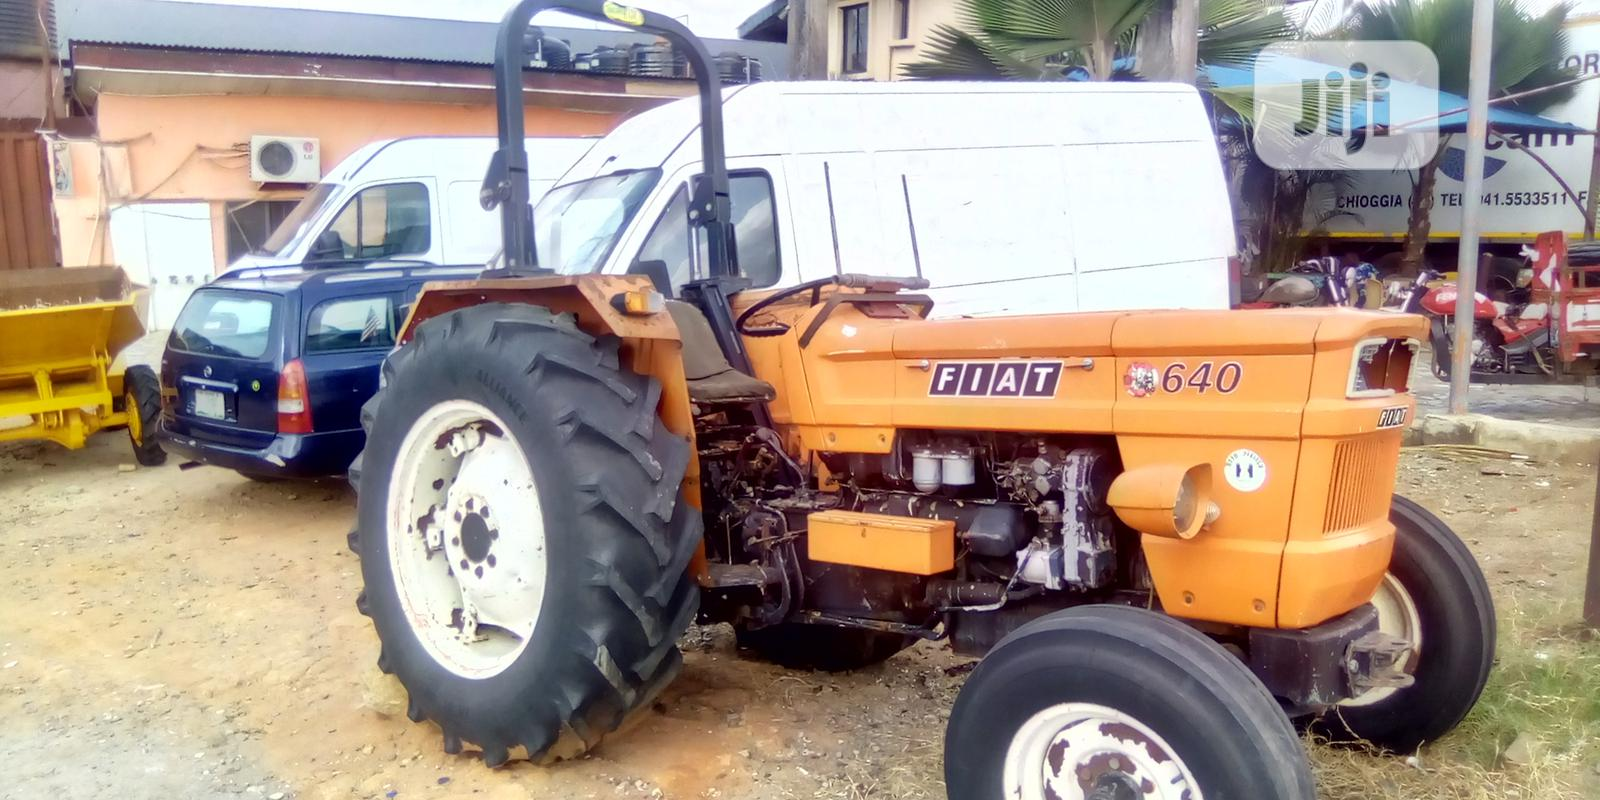 Foreign Used Tractors For Sale